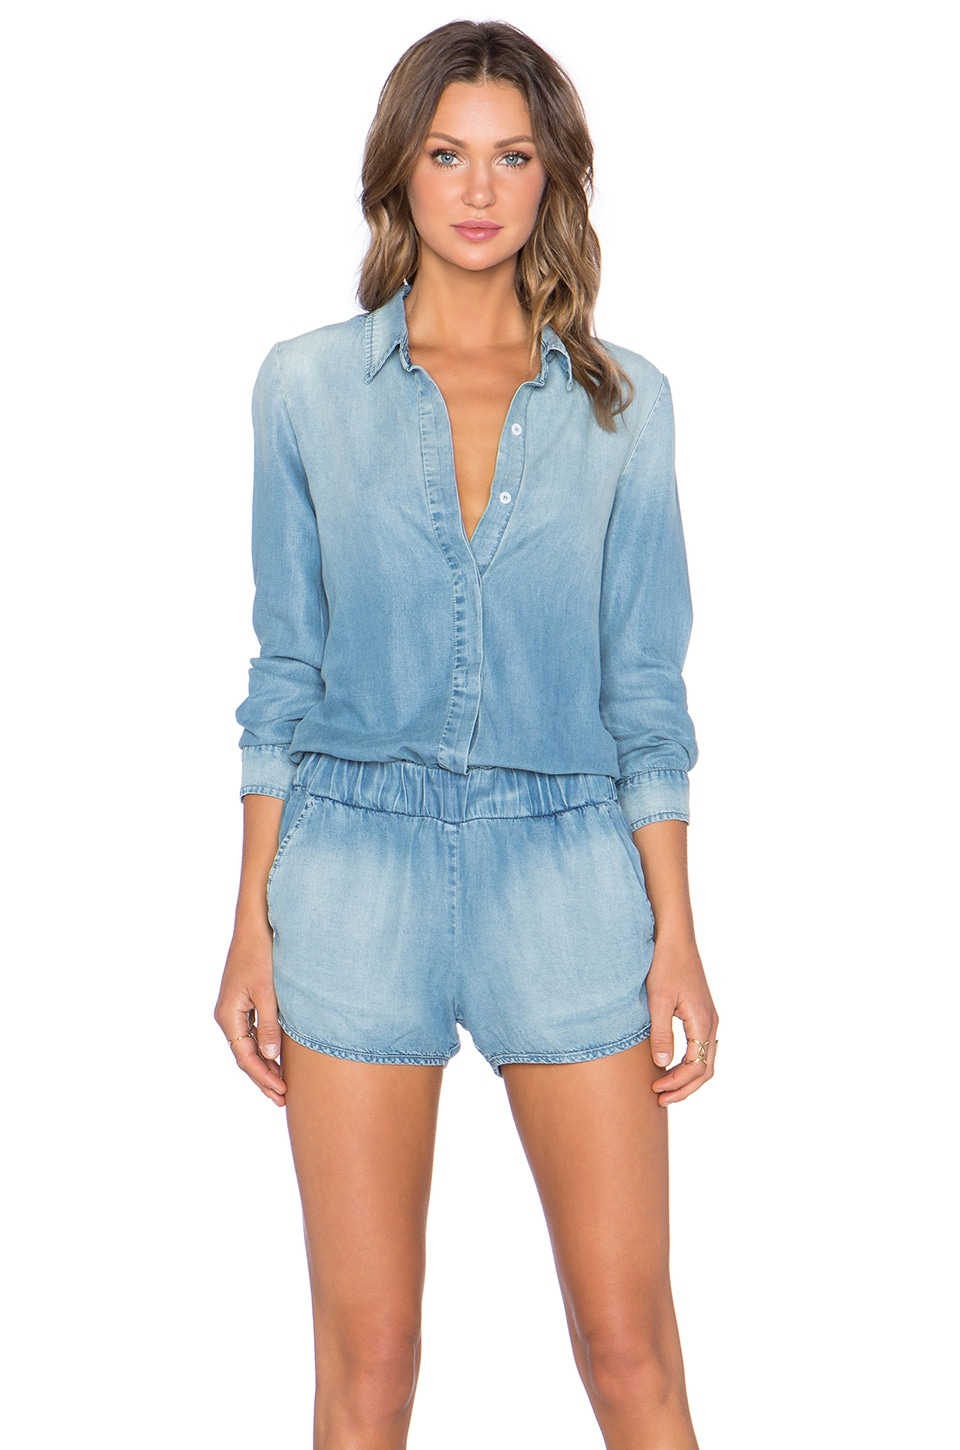 MONROW Long Sleeve Romper in Denim Wash